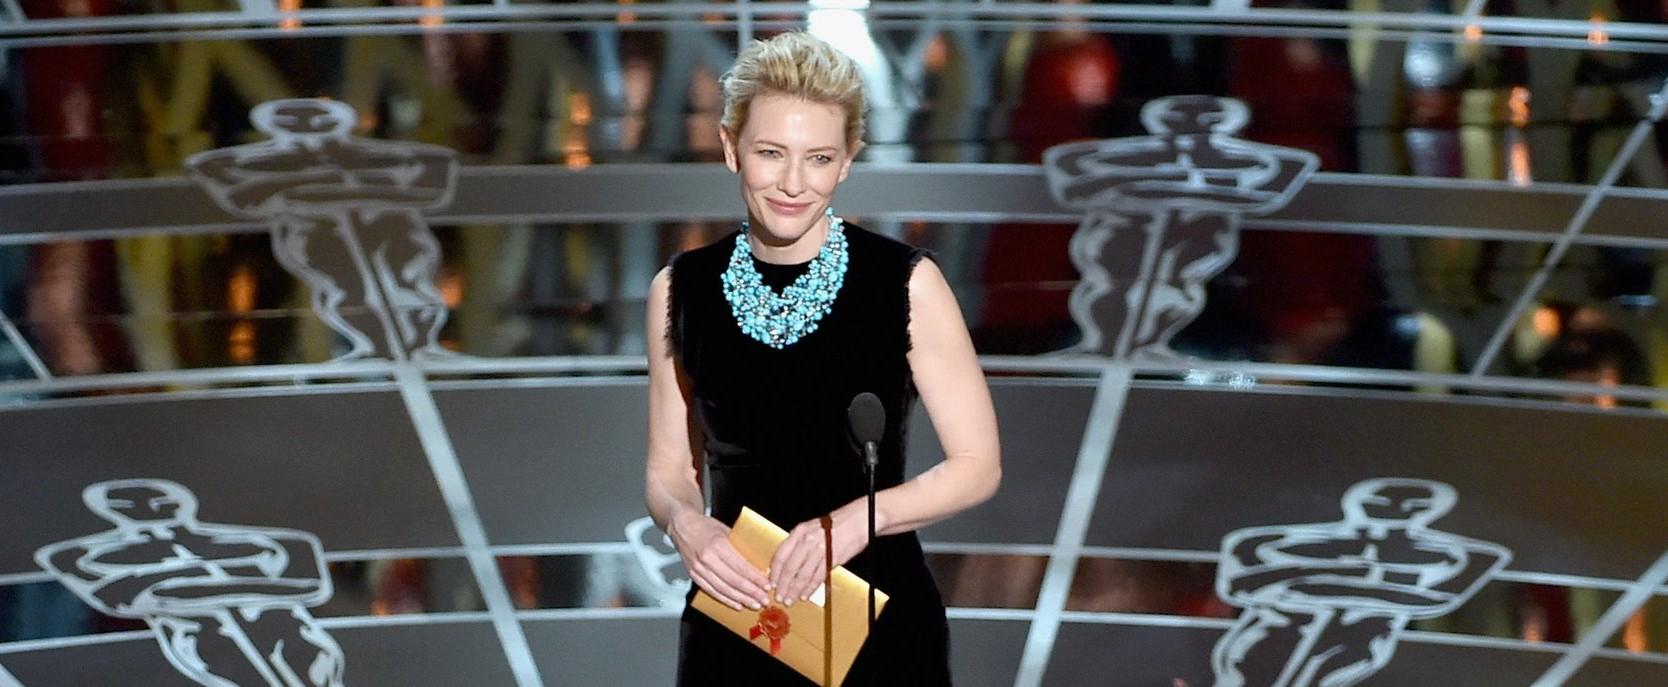 87th Academy Awards Pictures Update – Arrivals, Show, Backstage & Press Room